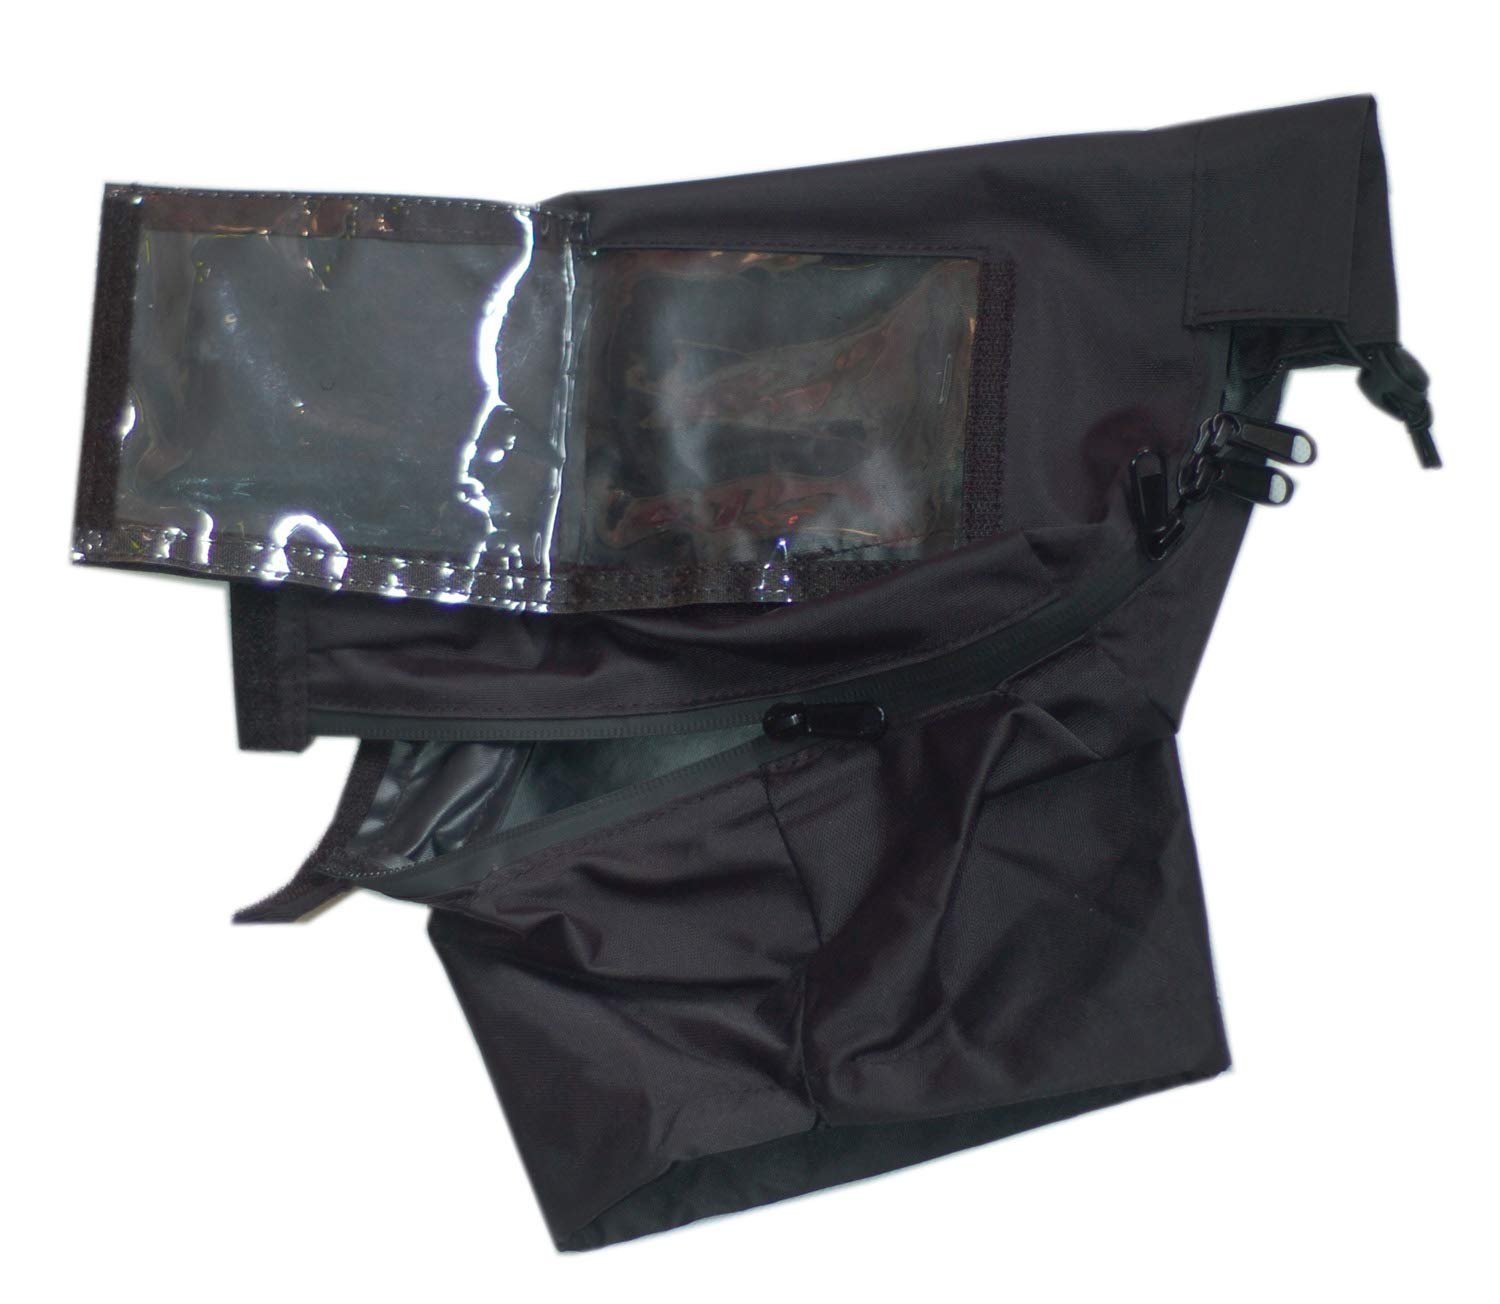 Rain Cover Compatible for Sony FDR-AX700 FDR-AX100 FDRAX33 FDR-AX53 Camera Camcorder